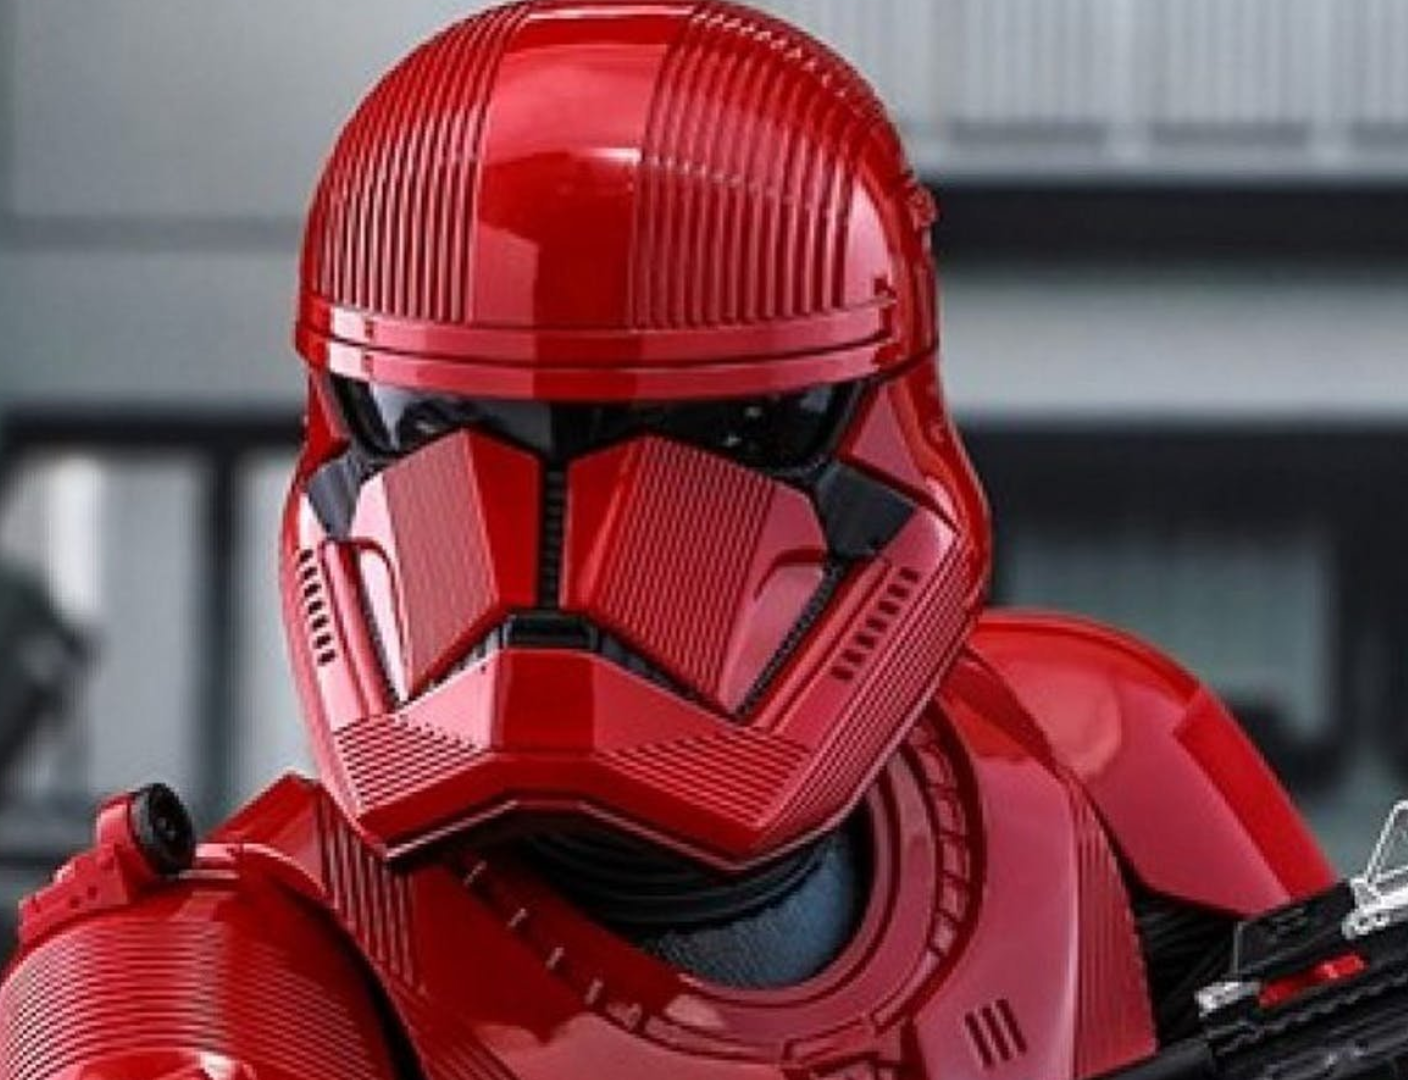 How The Stormtrooper Design Evolved Throughout The 'Star Wars' Movies